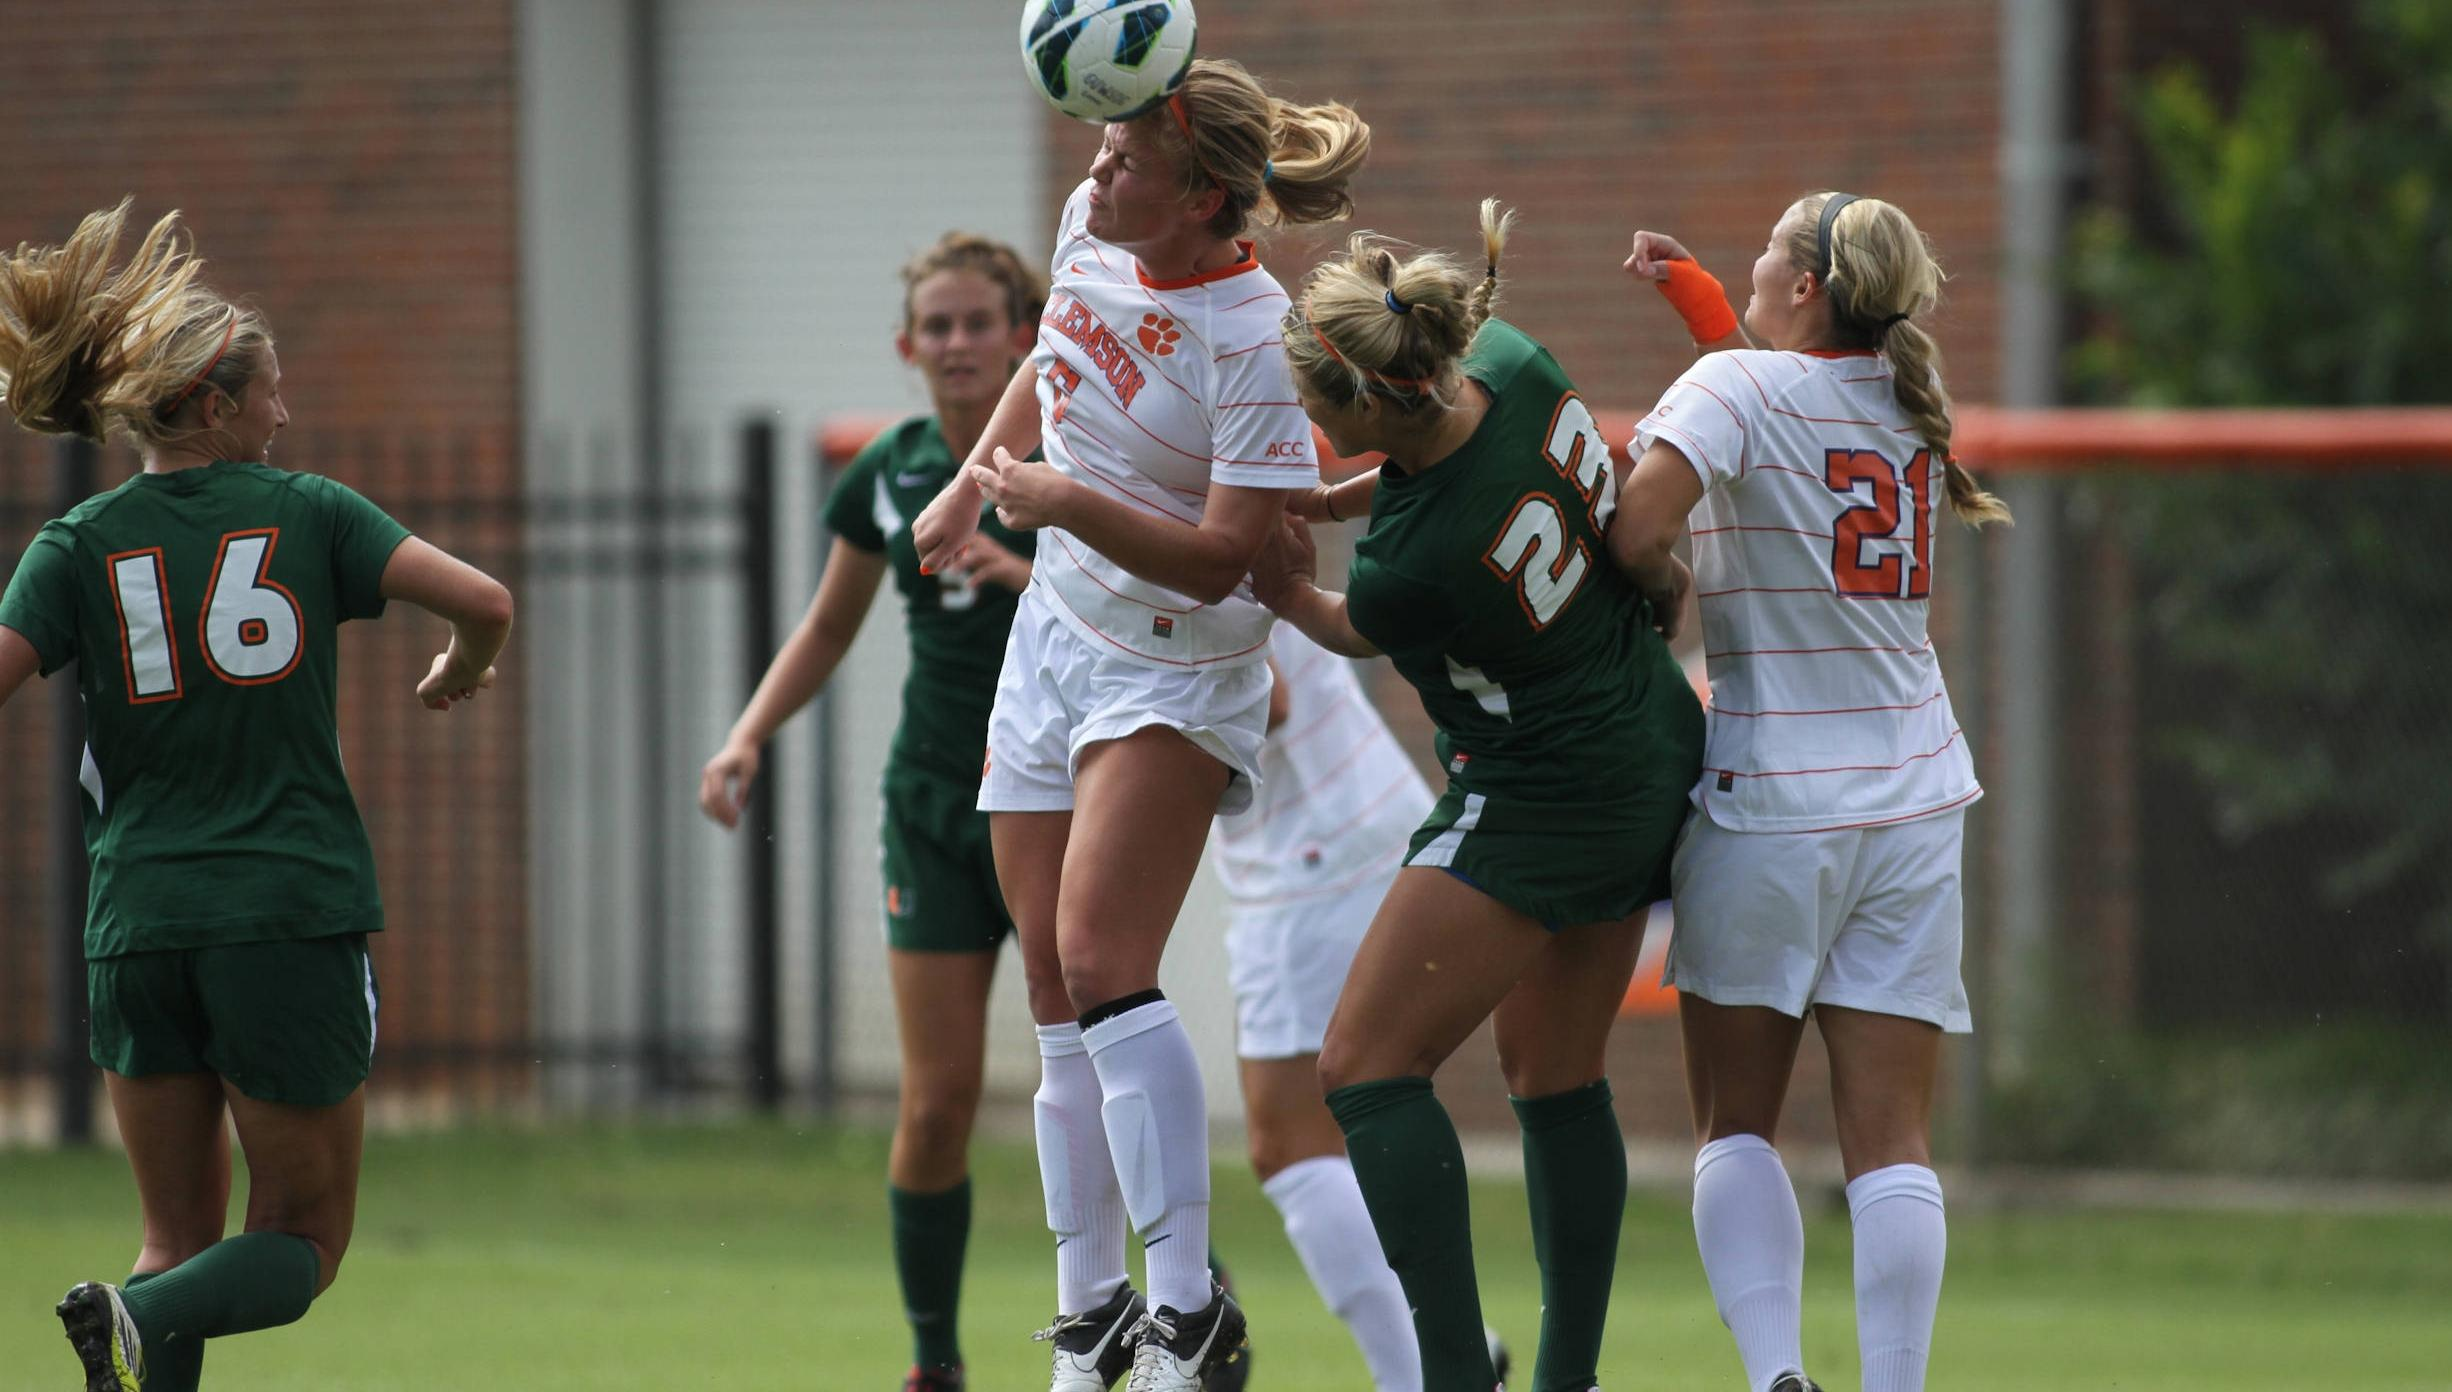 Tigers Fall to Miami 2-0 Sunday at Historic Riggs Field